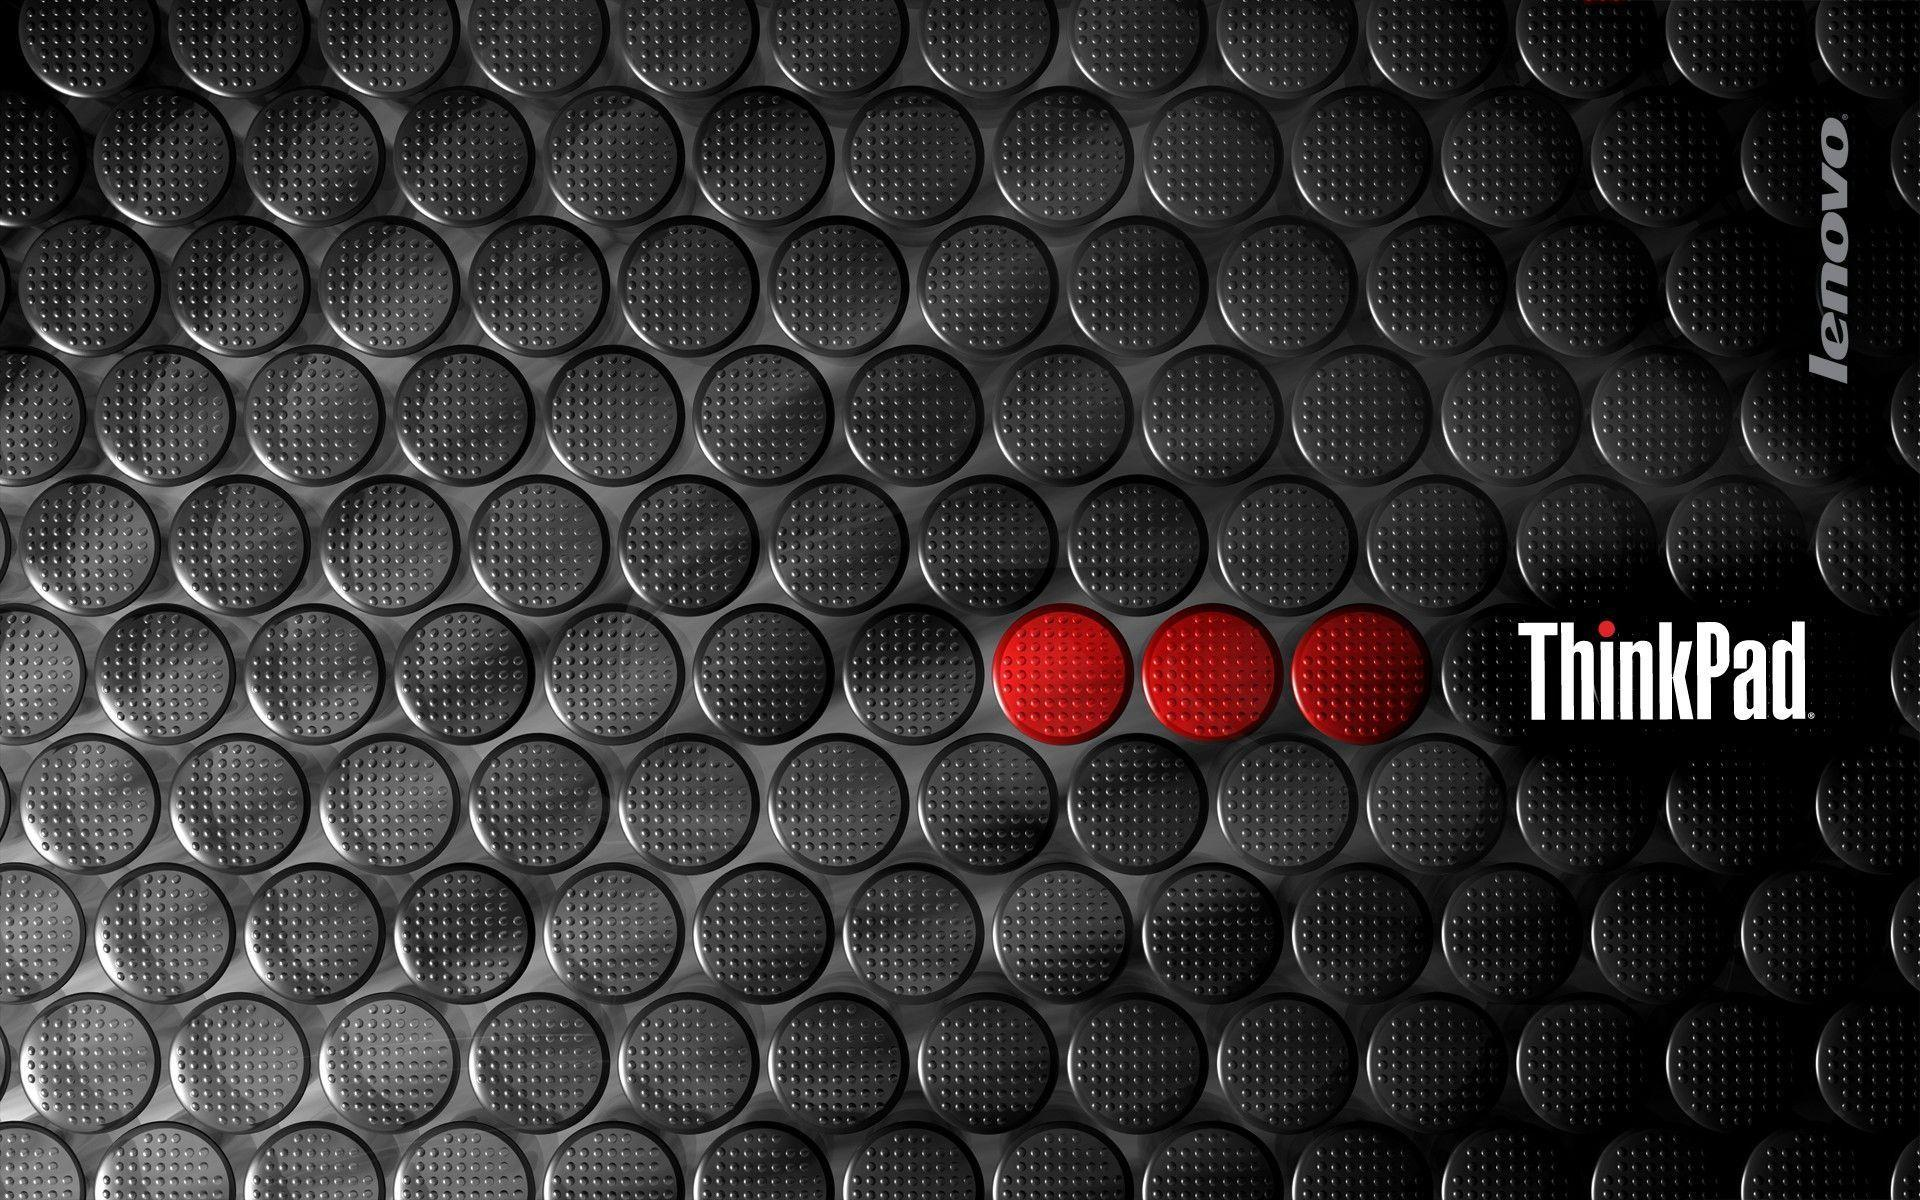 thinkpad wallpapers wallpaper - photo #2